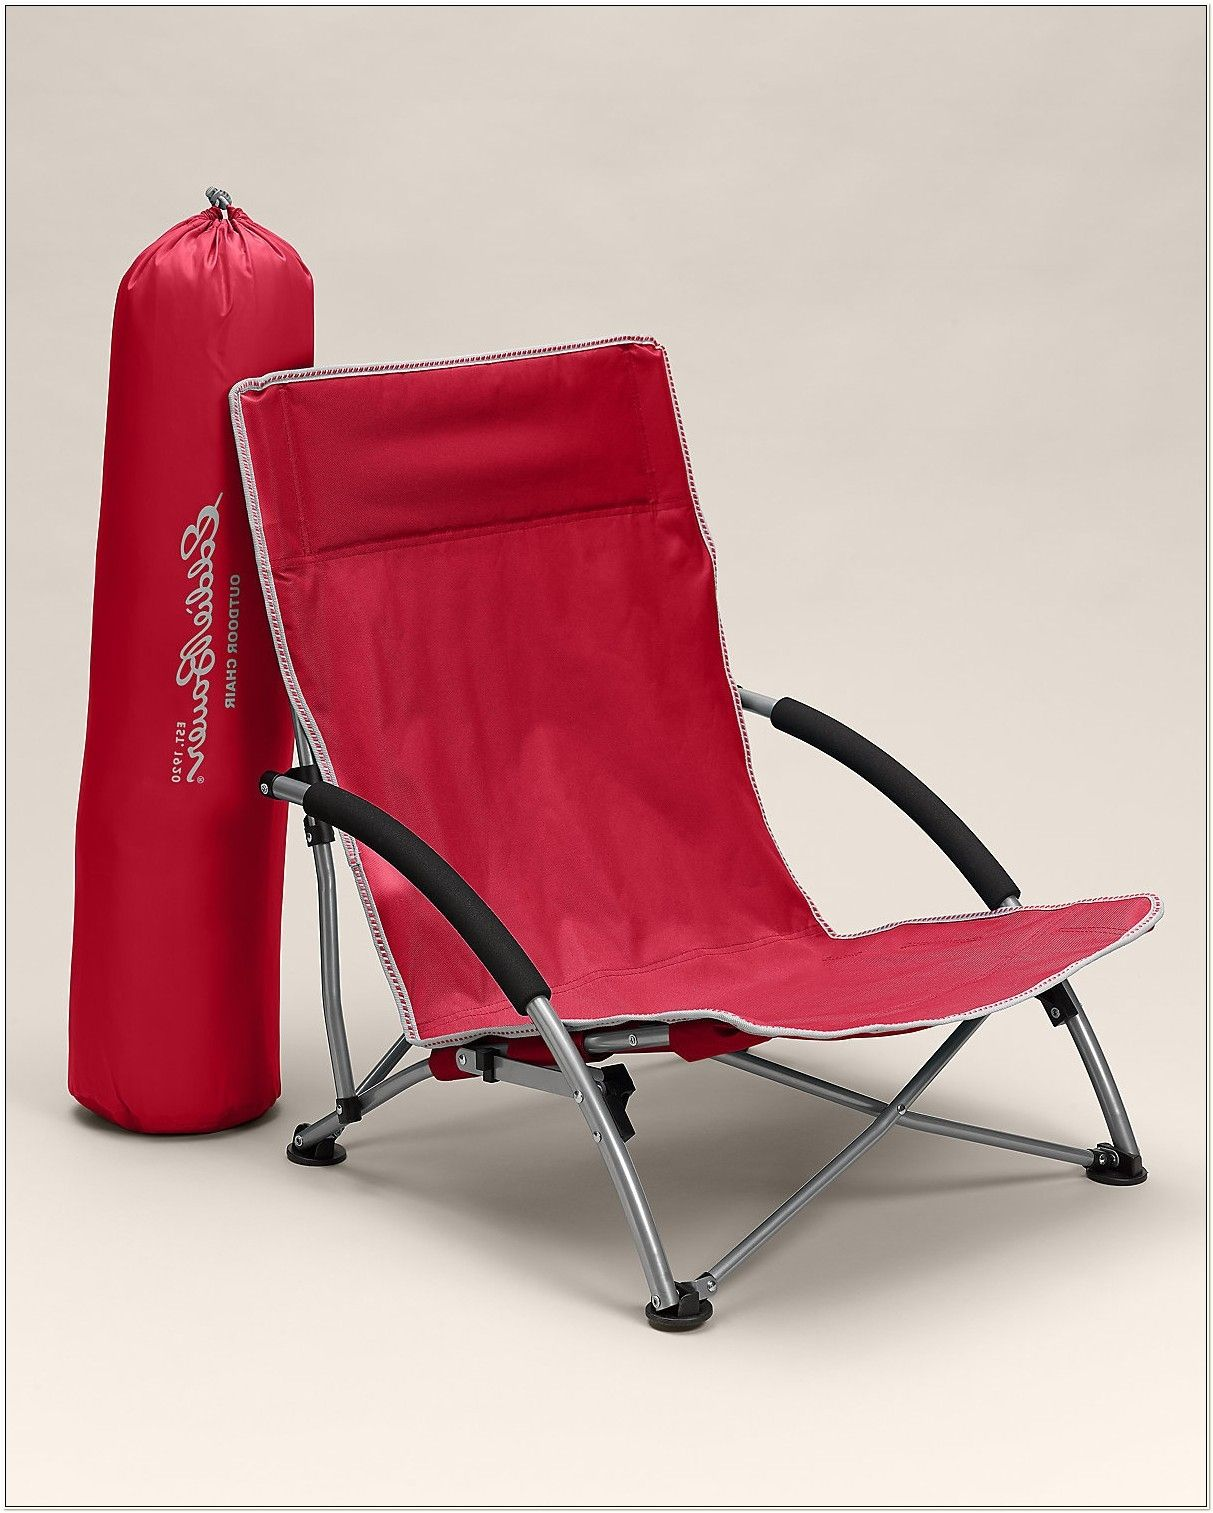 Eddie Bauer Folding Camp Chairs Outdoor Folding Chairs Folding